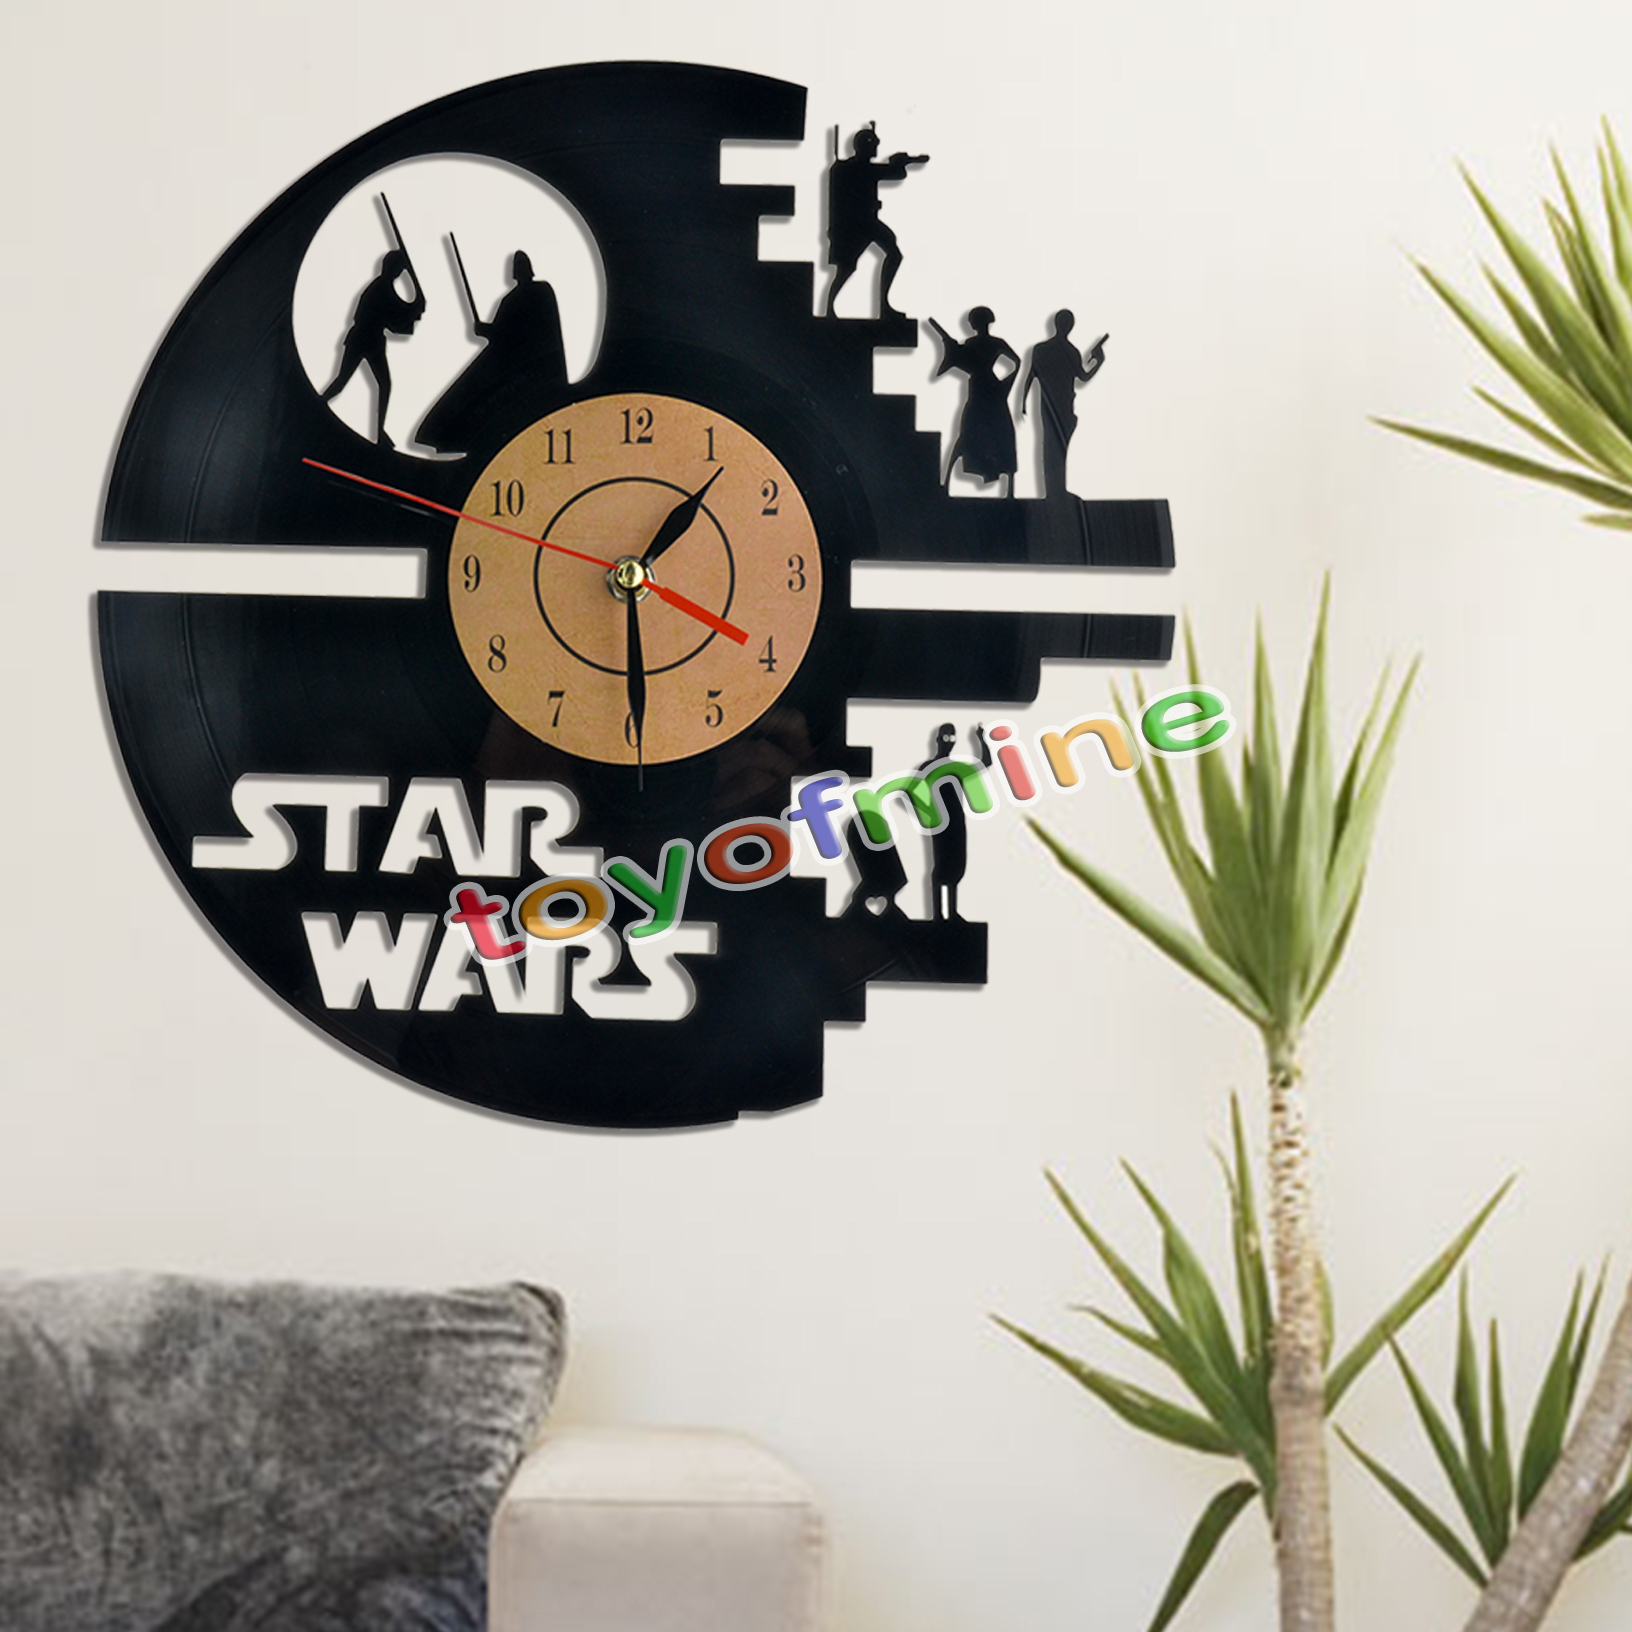 Star Wars Boba Fett Yoda Chewbacca Luke Skywalker Wall